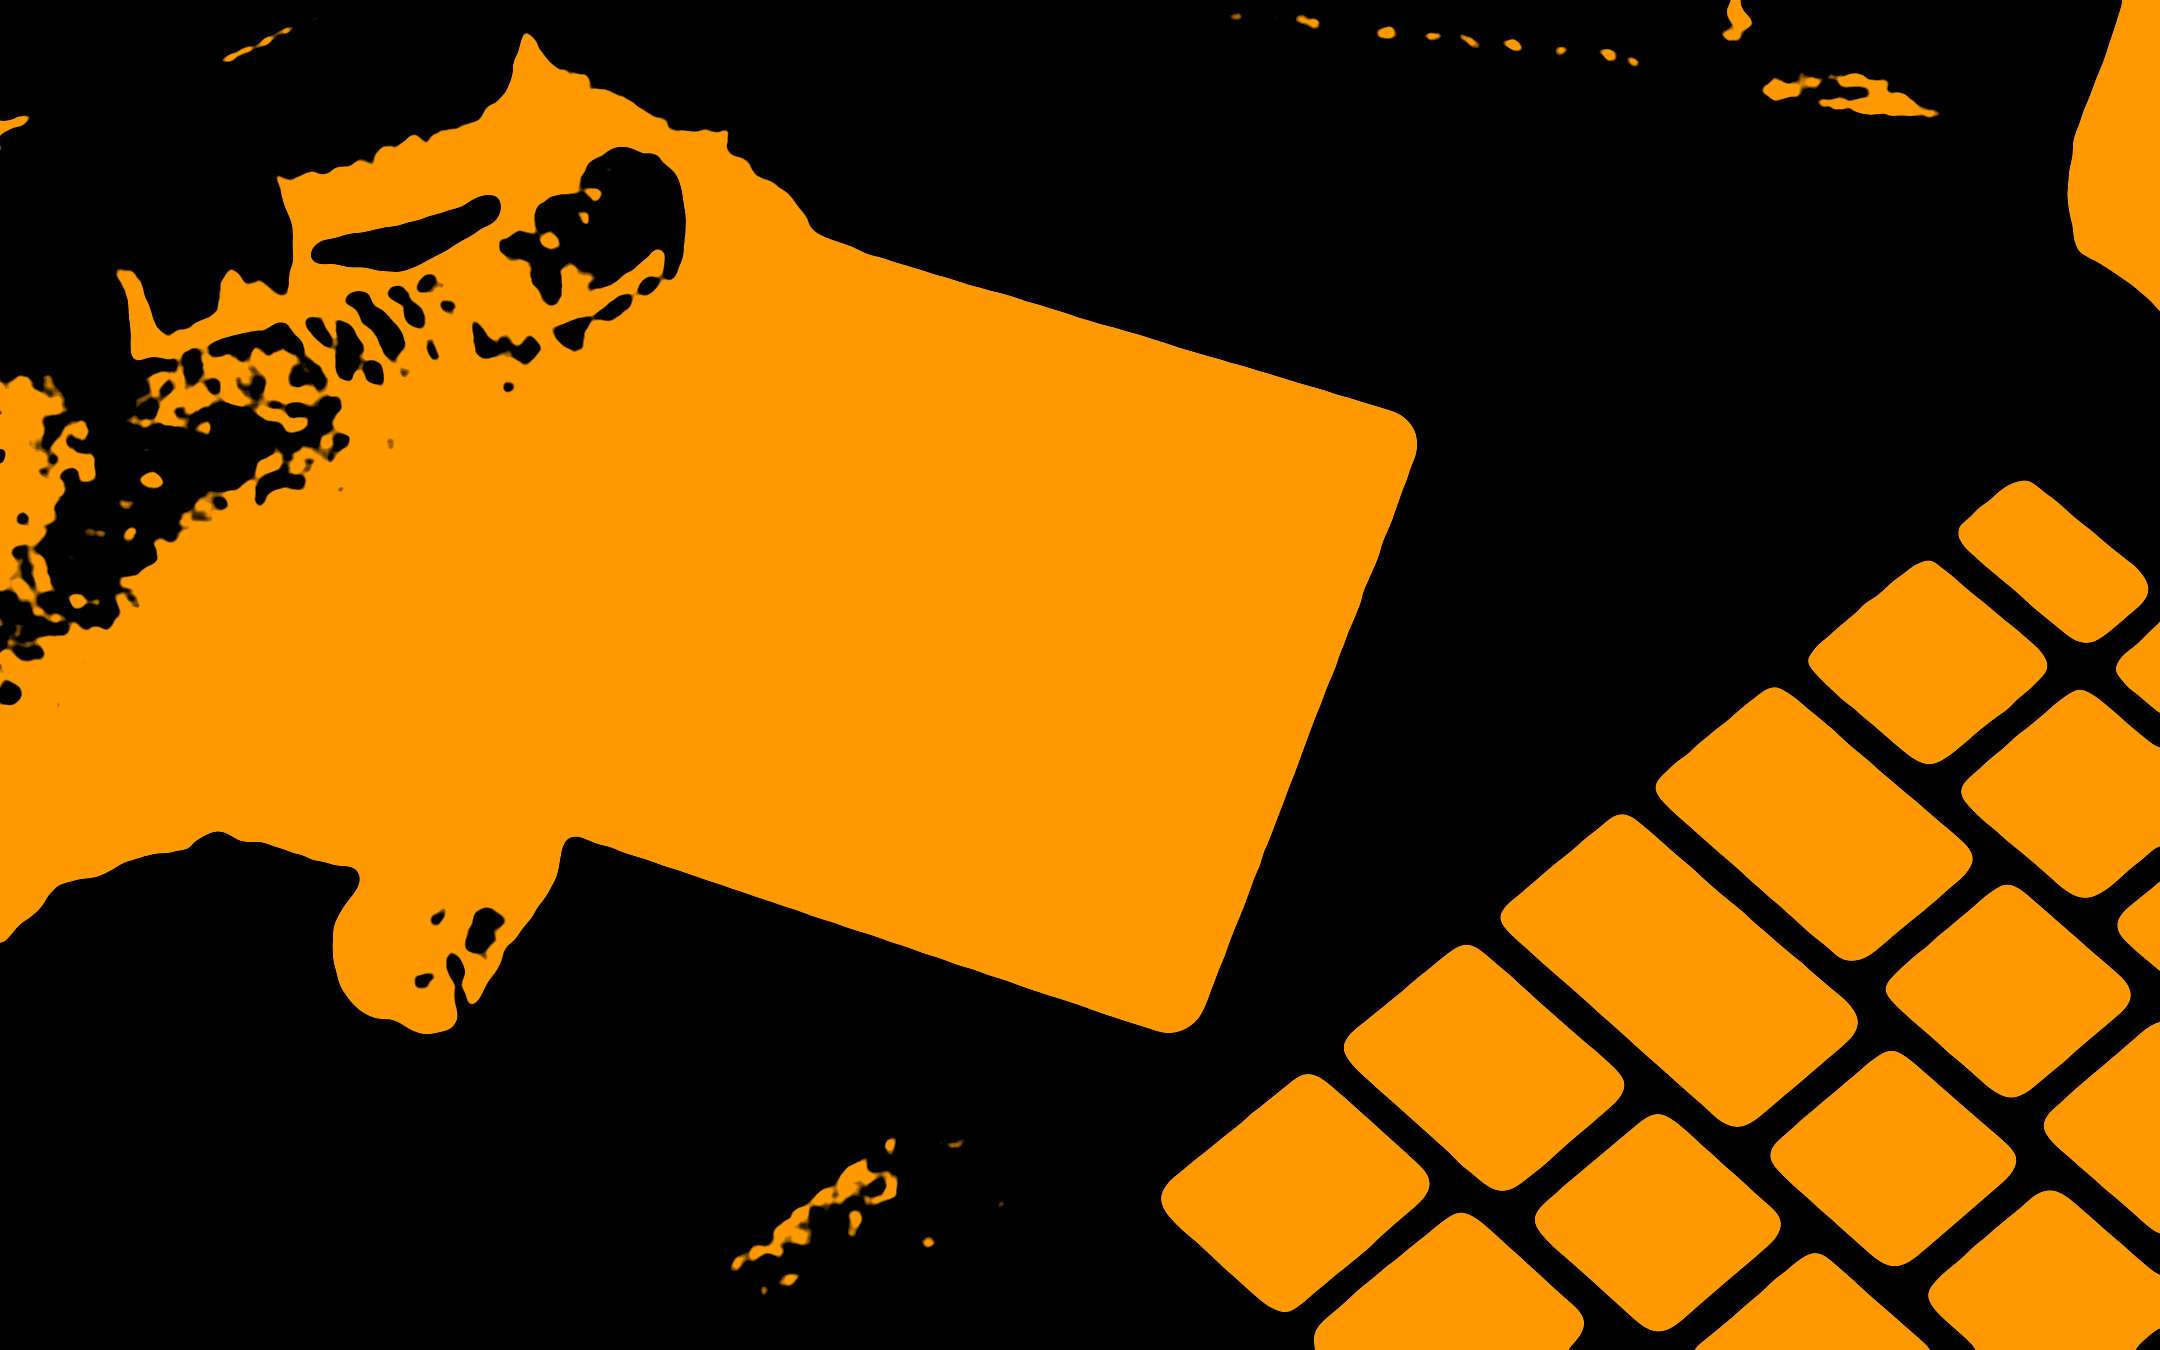 Pornhub loses pieces: the farewell of Visa and Mastercard